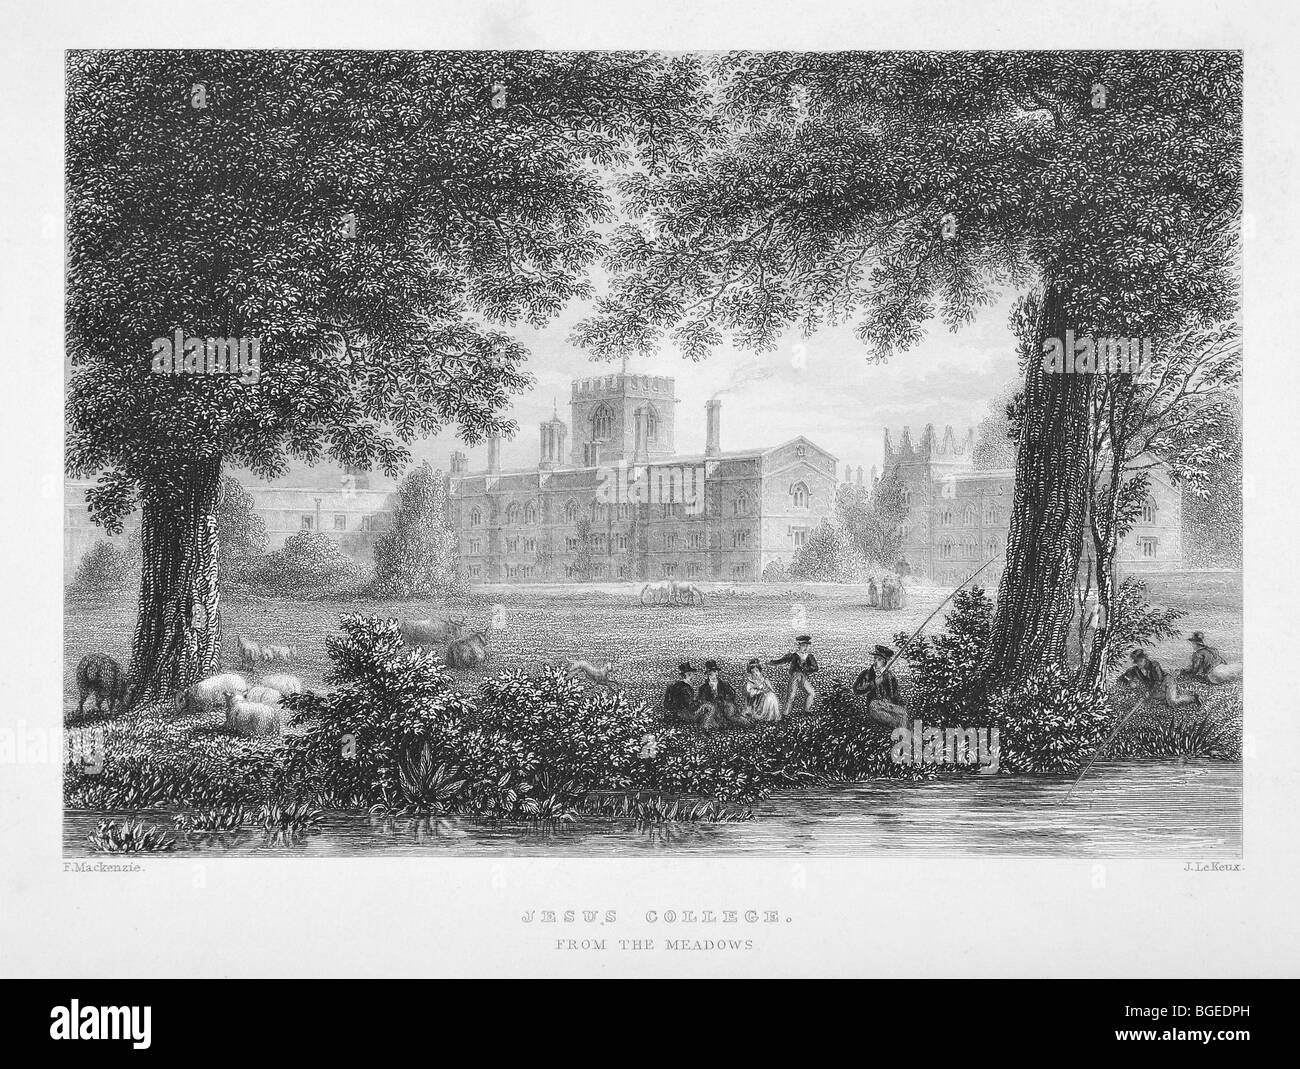 Jesus College, Cambridge, from the meadows - Stock Image